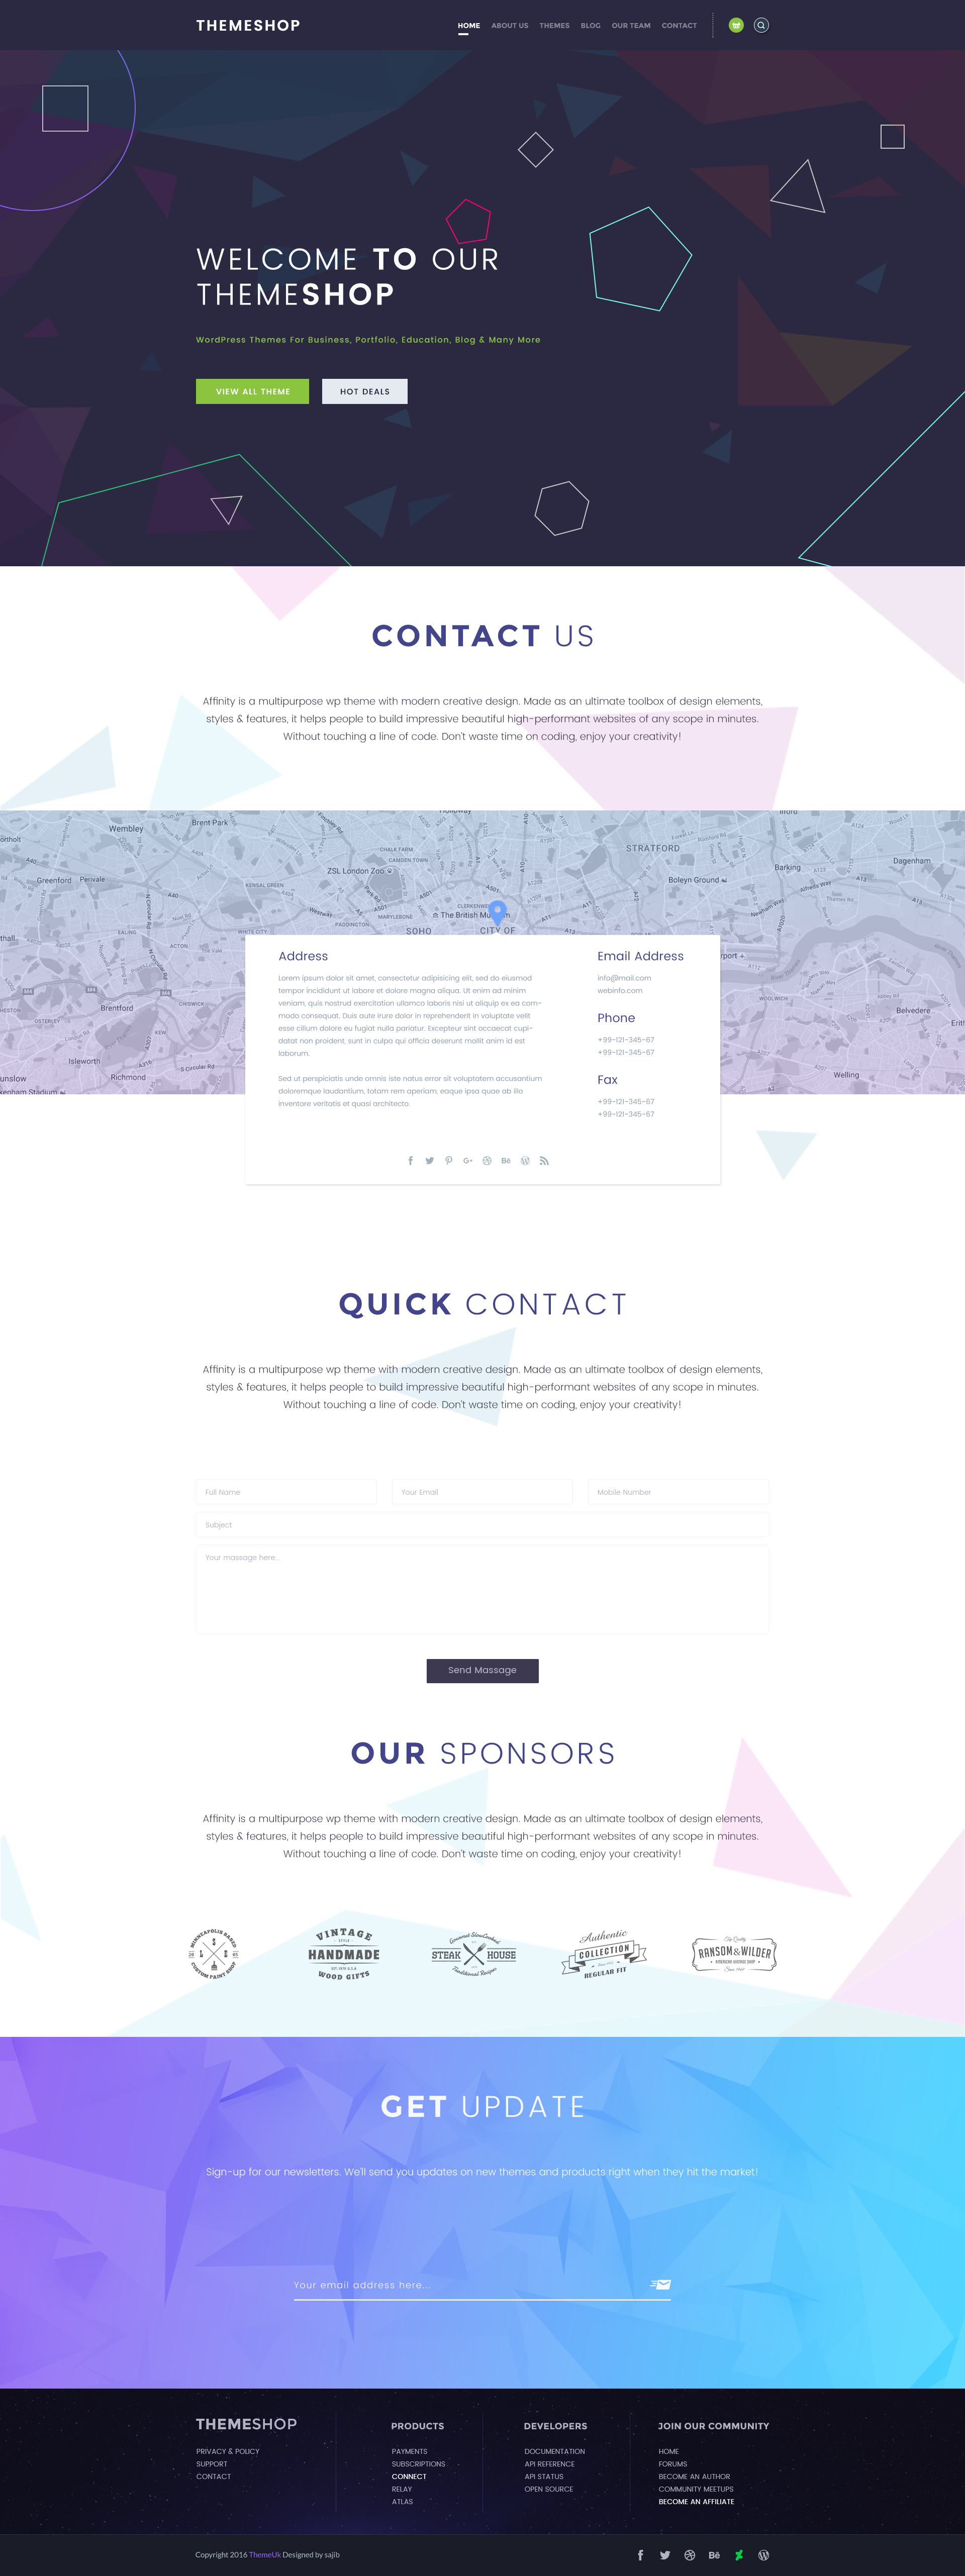 Themeshop One Page Amp Multi Page Psd Template By Theme